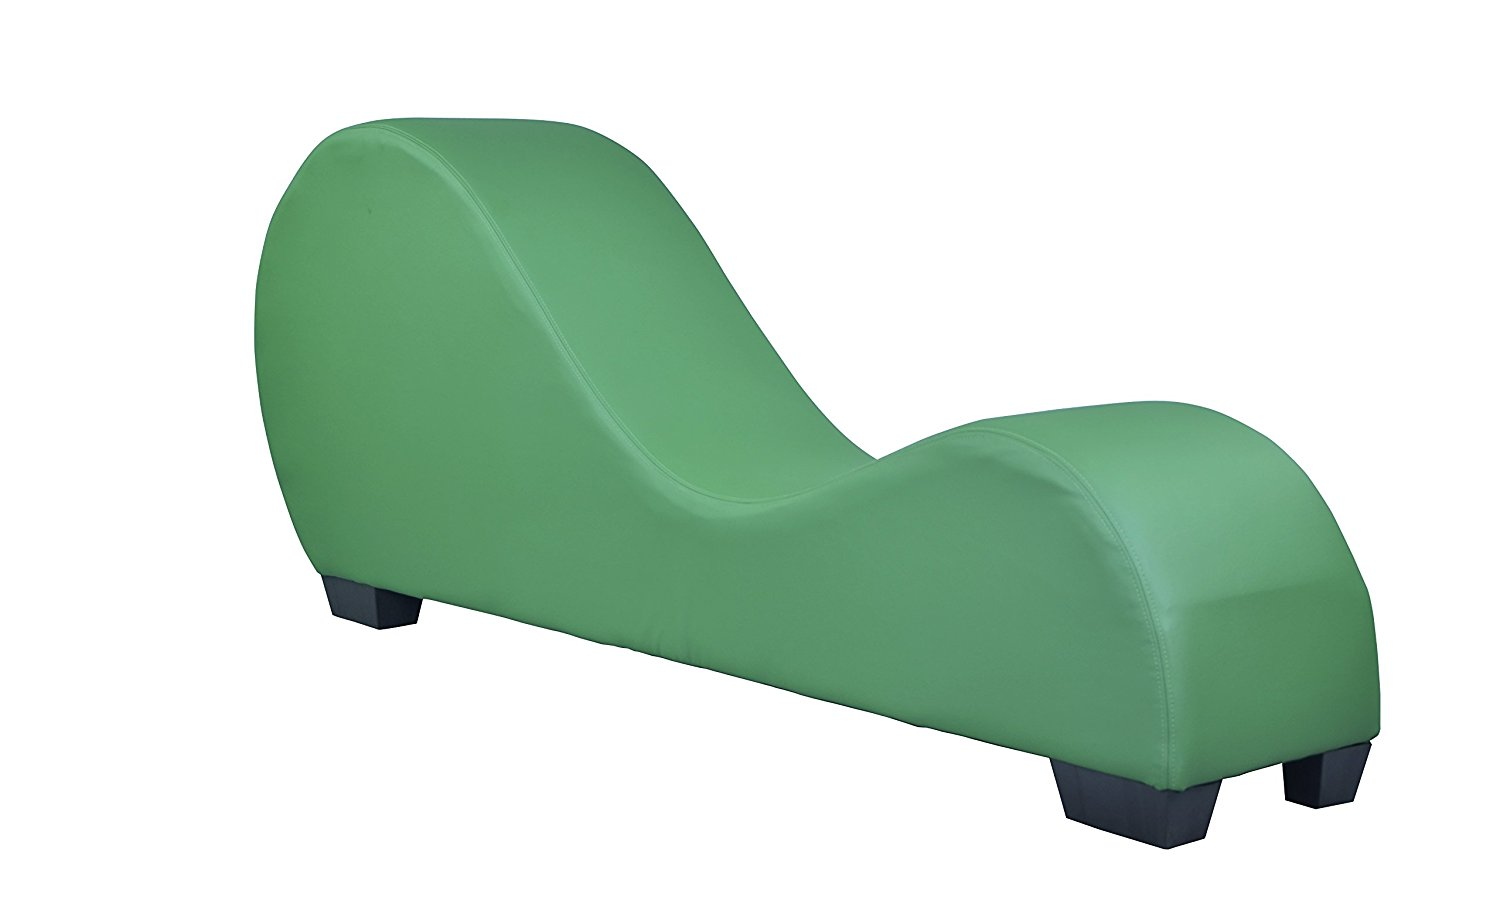 Best Sex Chair New Green Leather Yoga Chair Stretch Sofa Relax Sex Chair Love Making Walmart